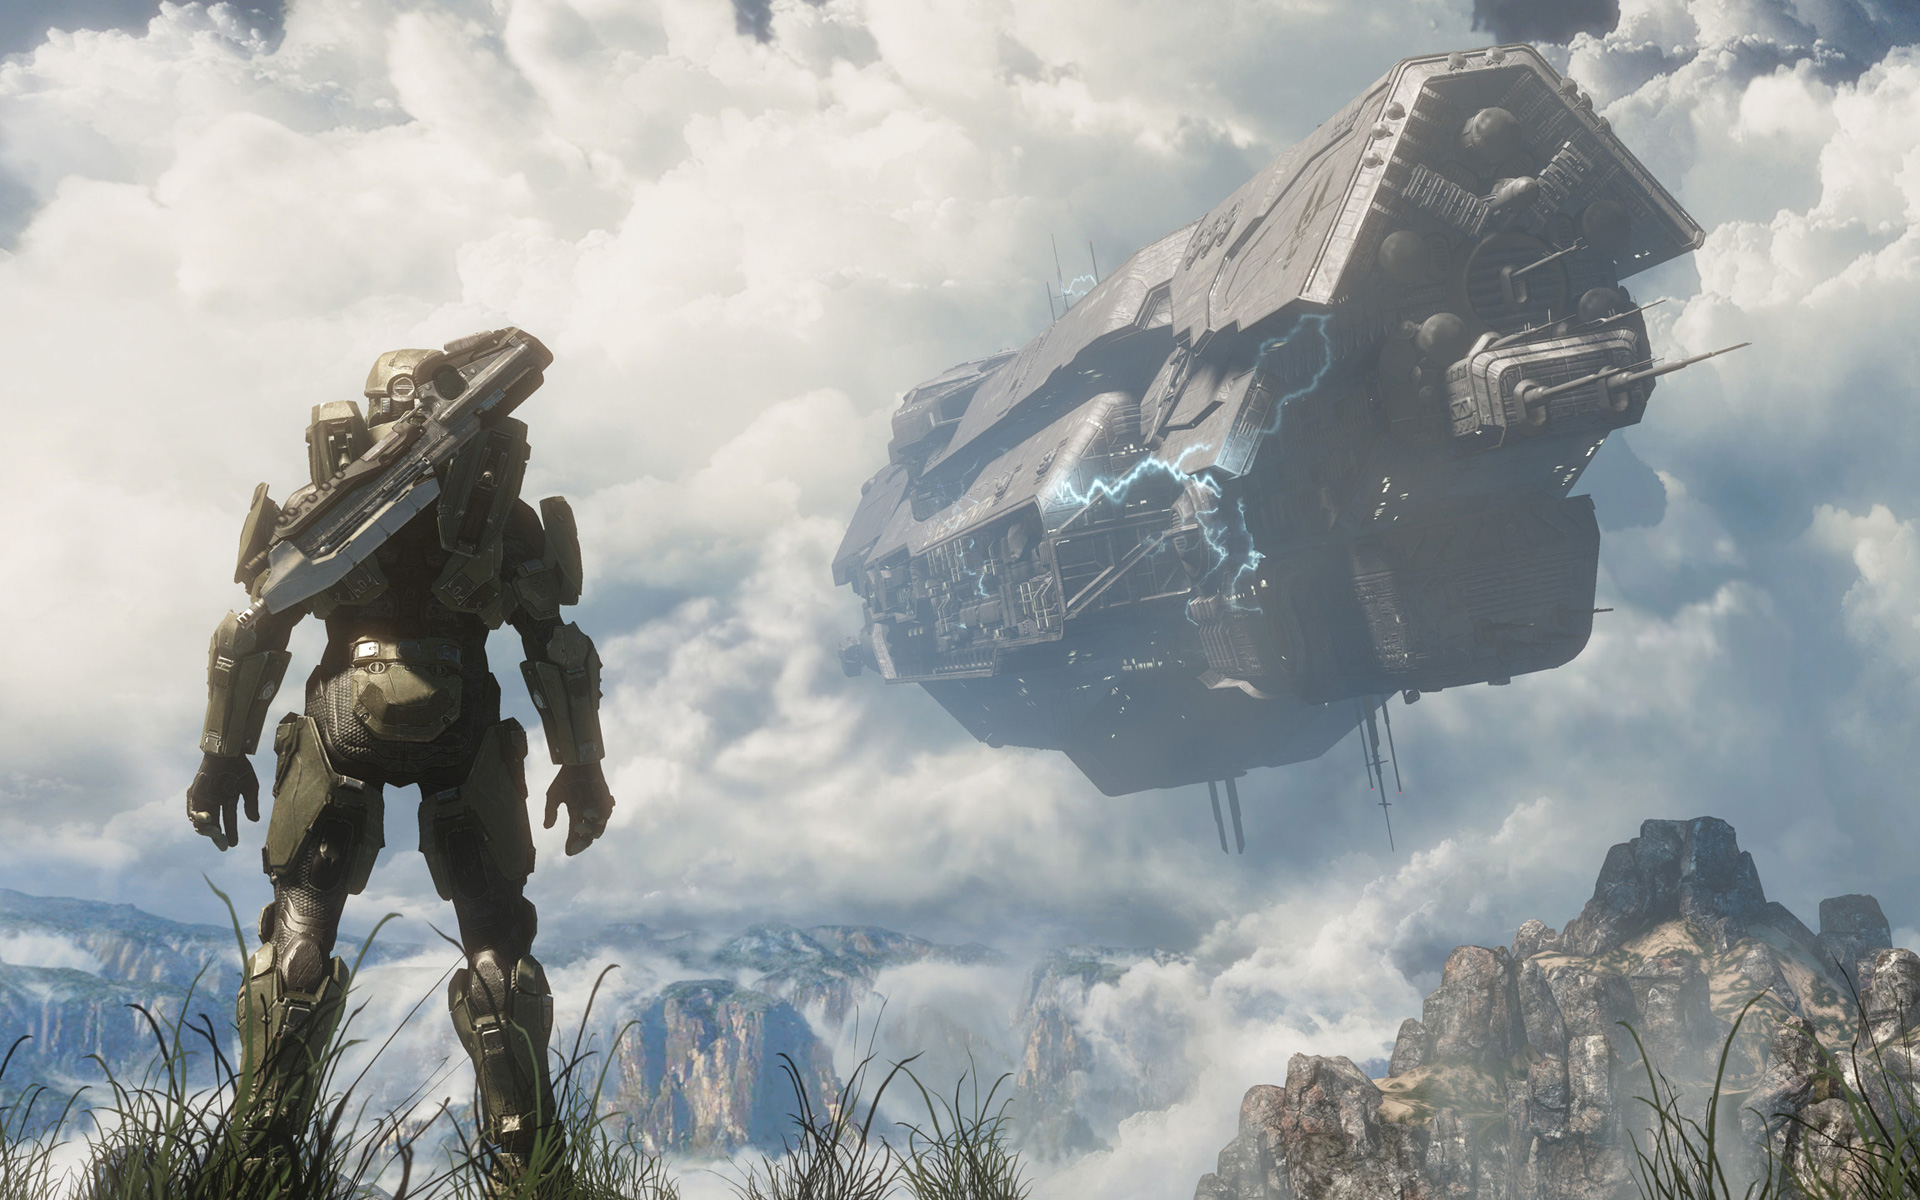 Halo 4 Wallpaper in 1920x1200